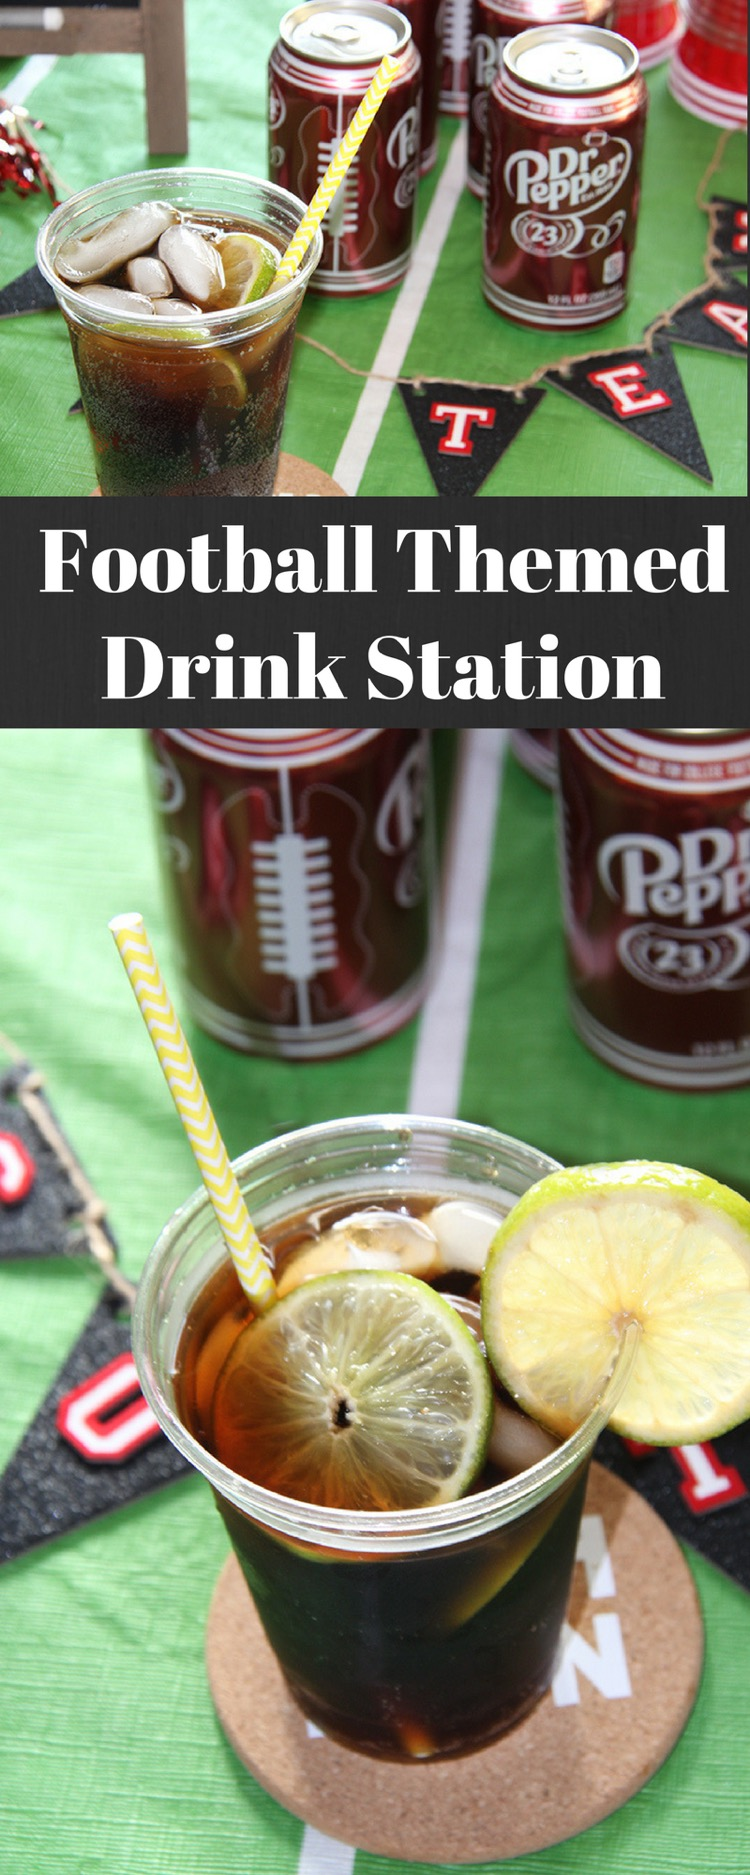 Football Themed Drink Station